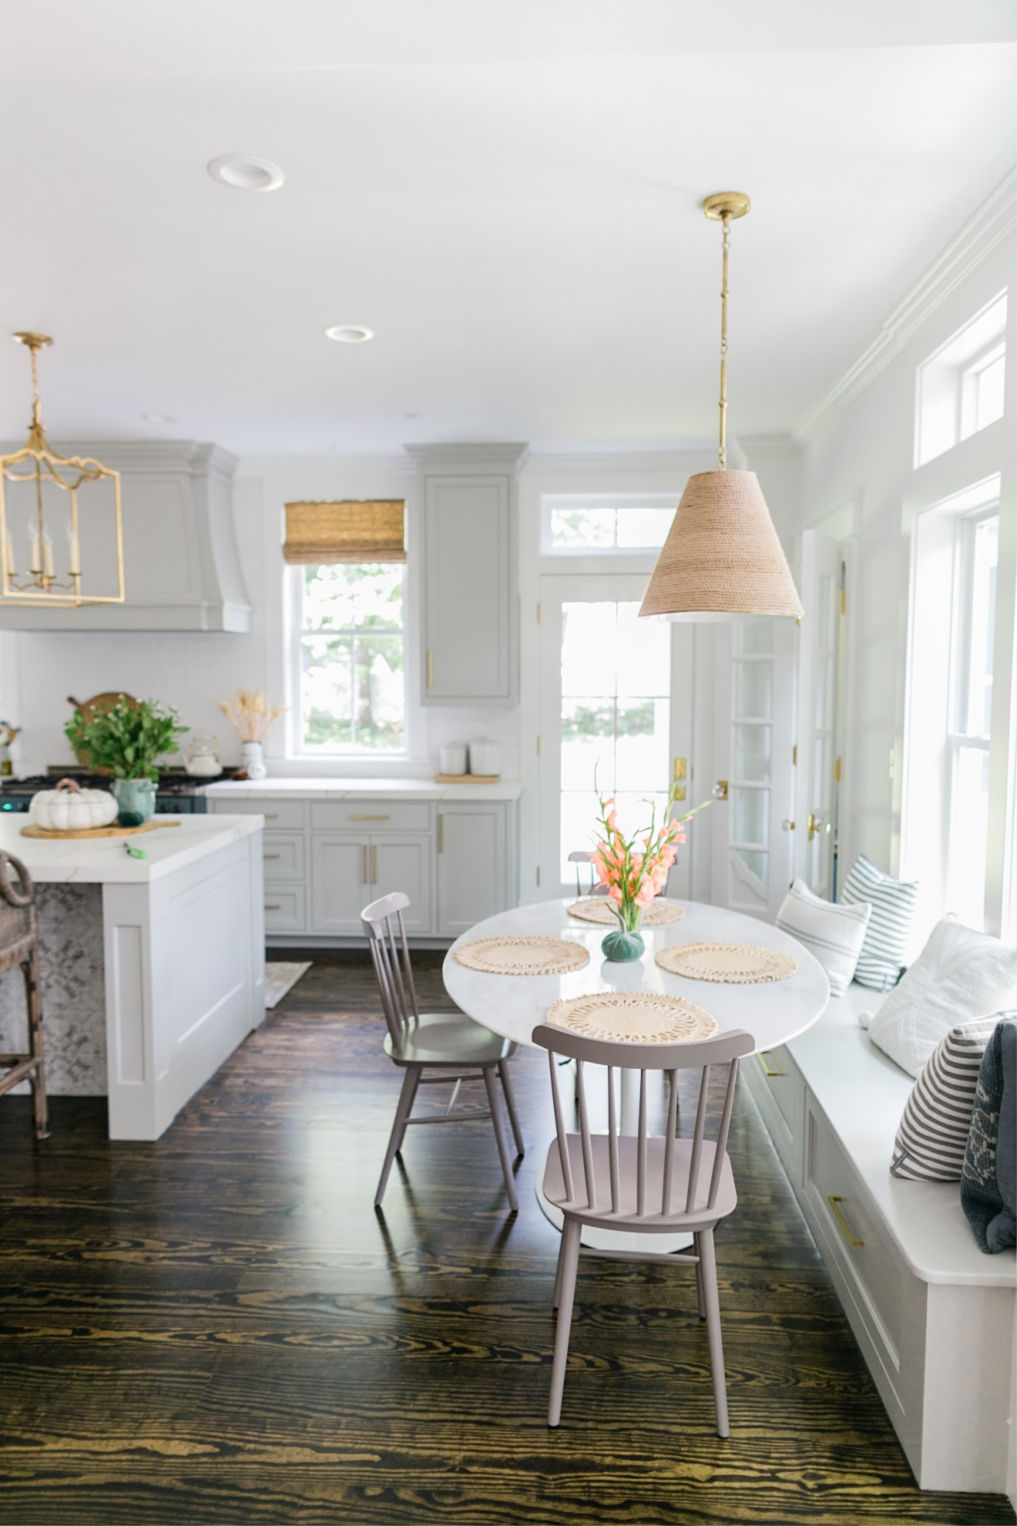 Beautiful white kitchen with breakfast nook complete with built in bench kellyelko.com #cottagestsyle #farmhousestyle #farmhouse #interiordecorate #interiordesign #kitchen #kitchendecor #whitekitchen